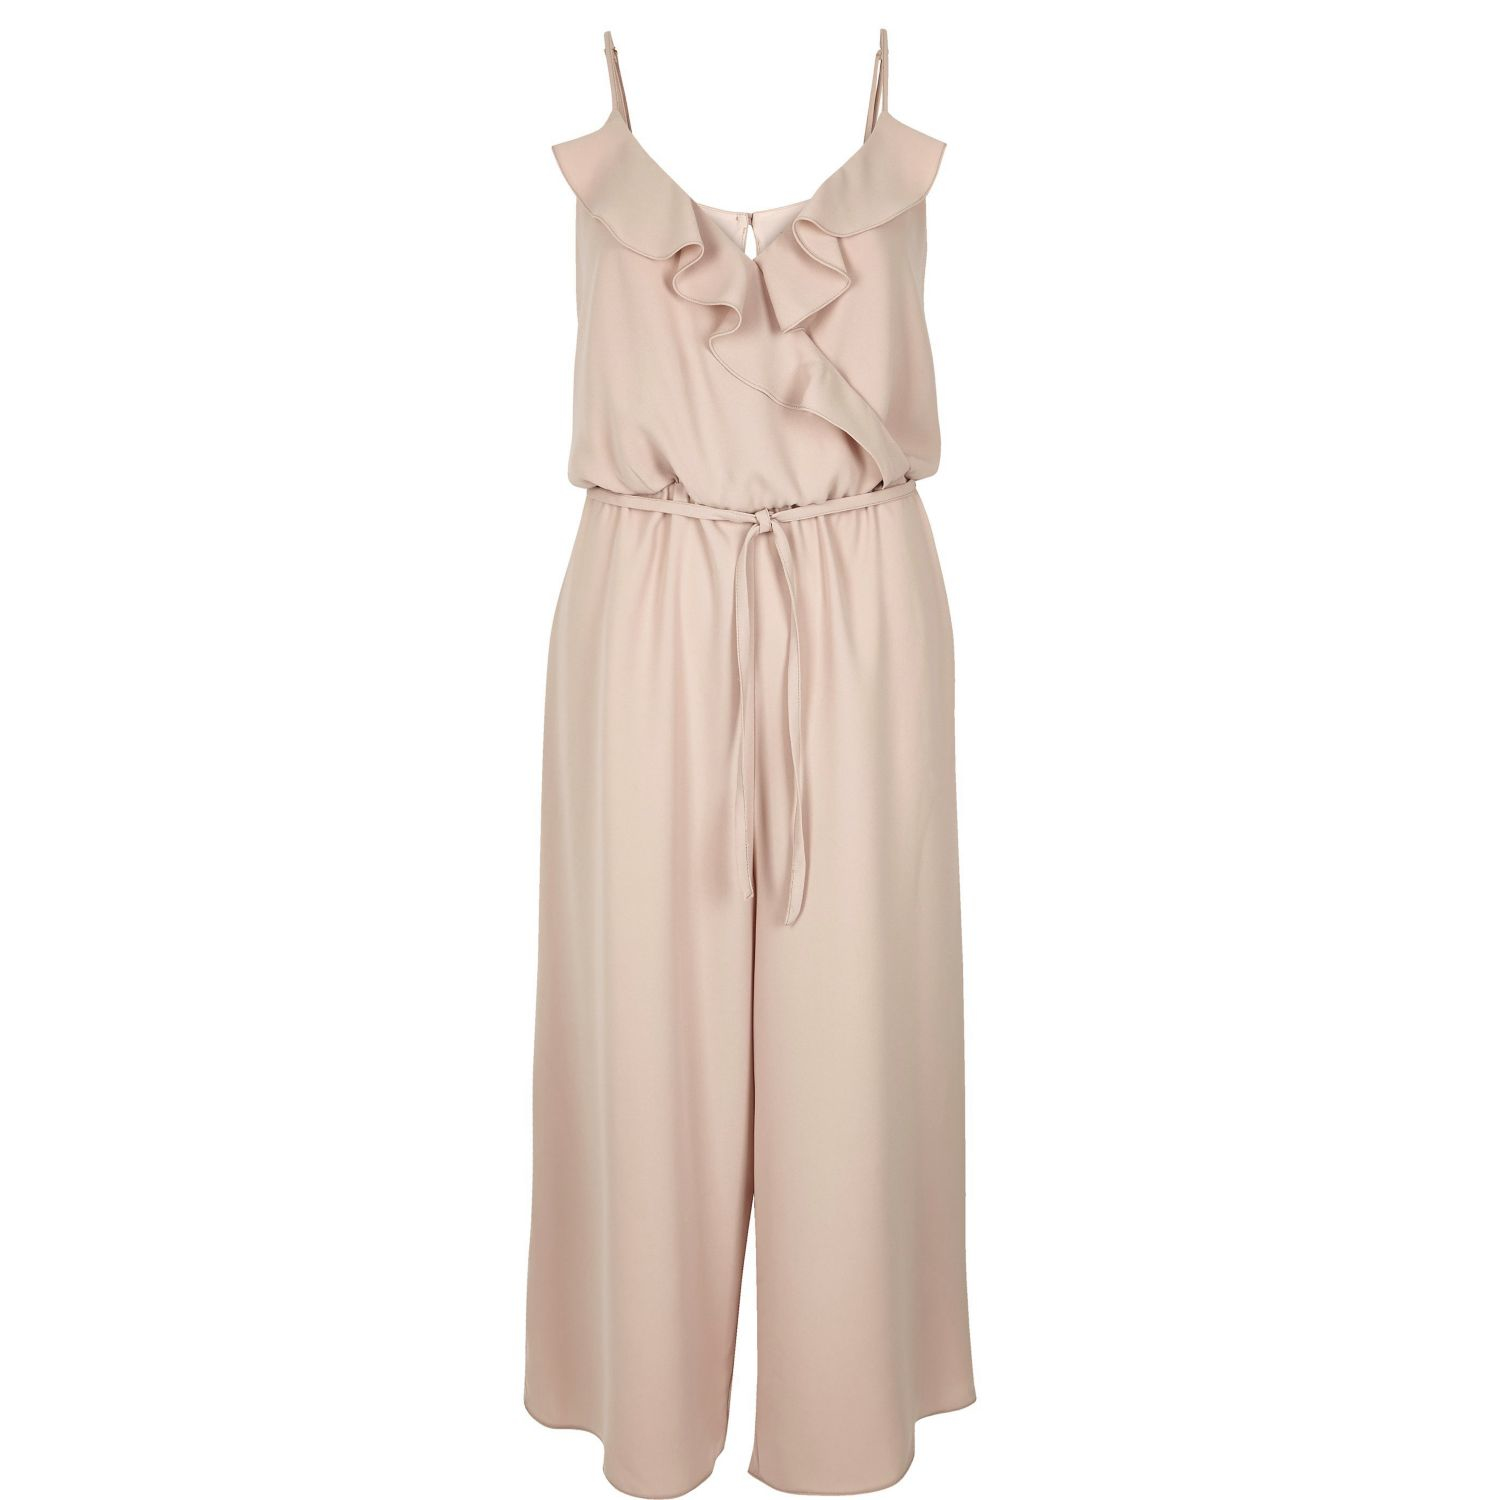 1b4bc699c1 River Island Light Pink Frilly Wrap Front Culotte Jumpsuit in Pink ...